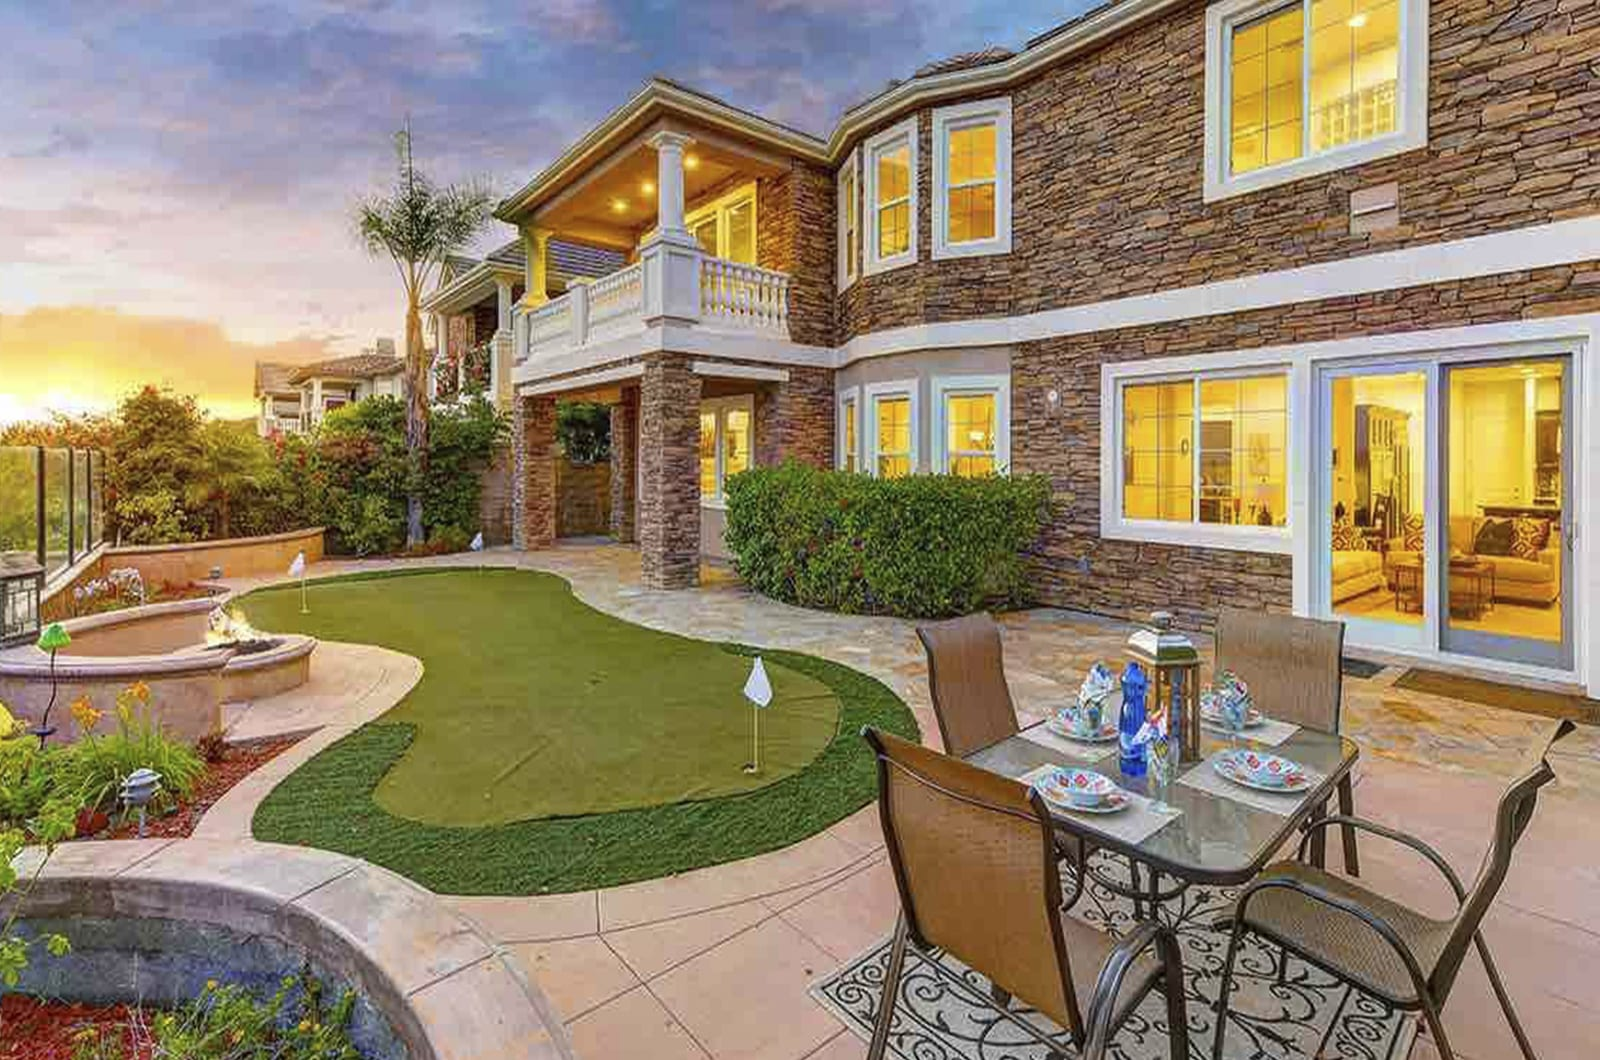 Feat Property Photography Services Los Angeles